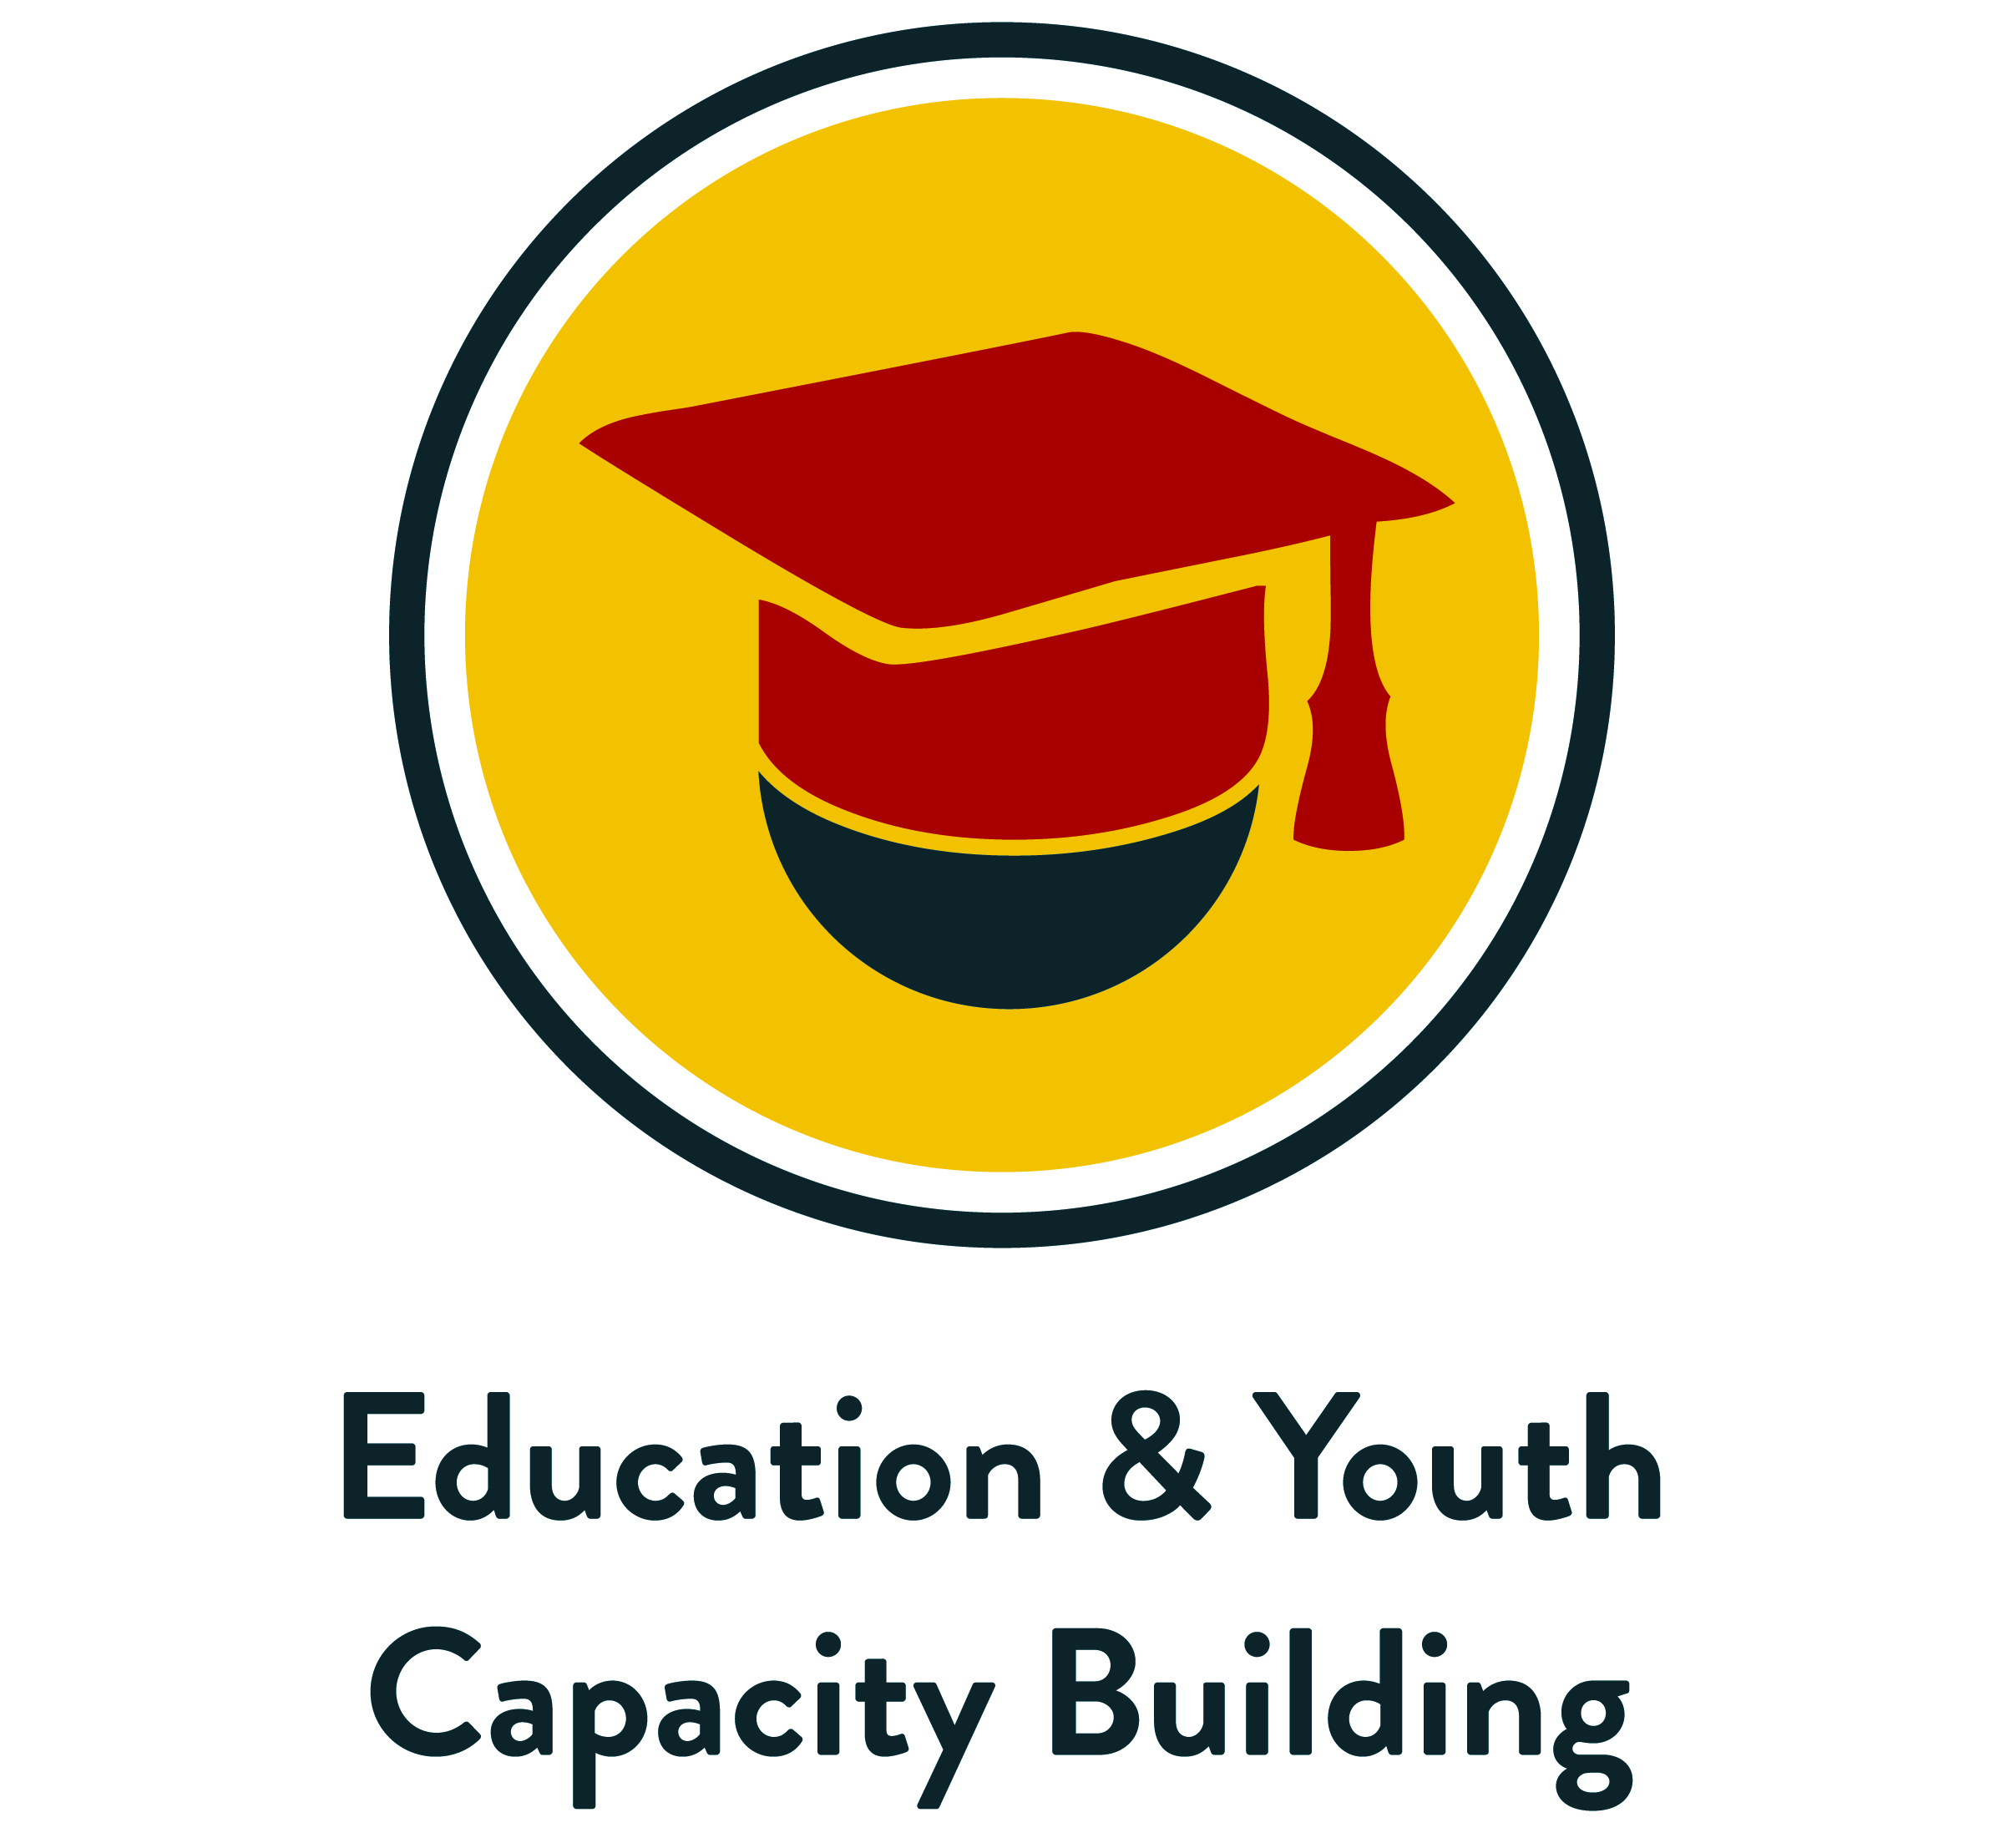 Education & Youth Capacity Building